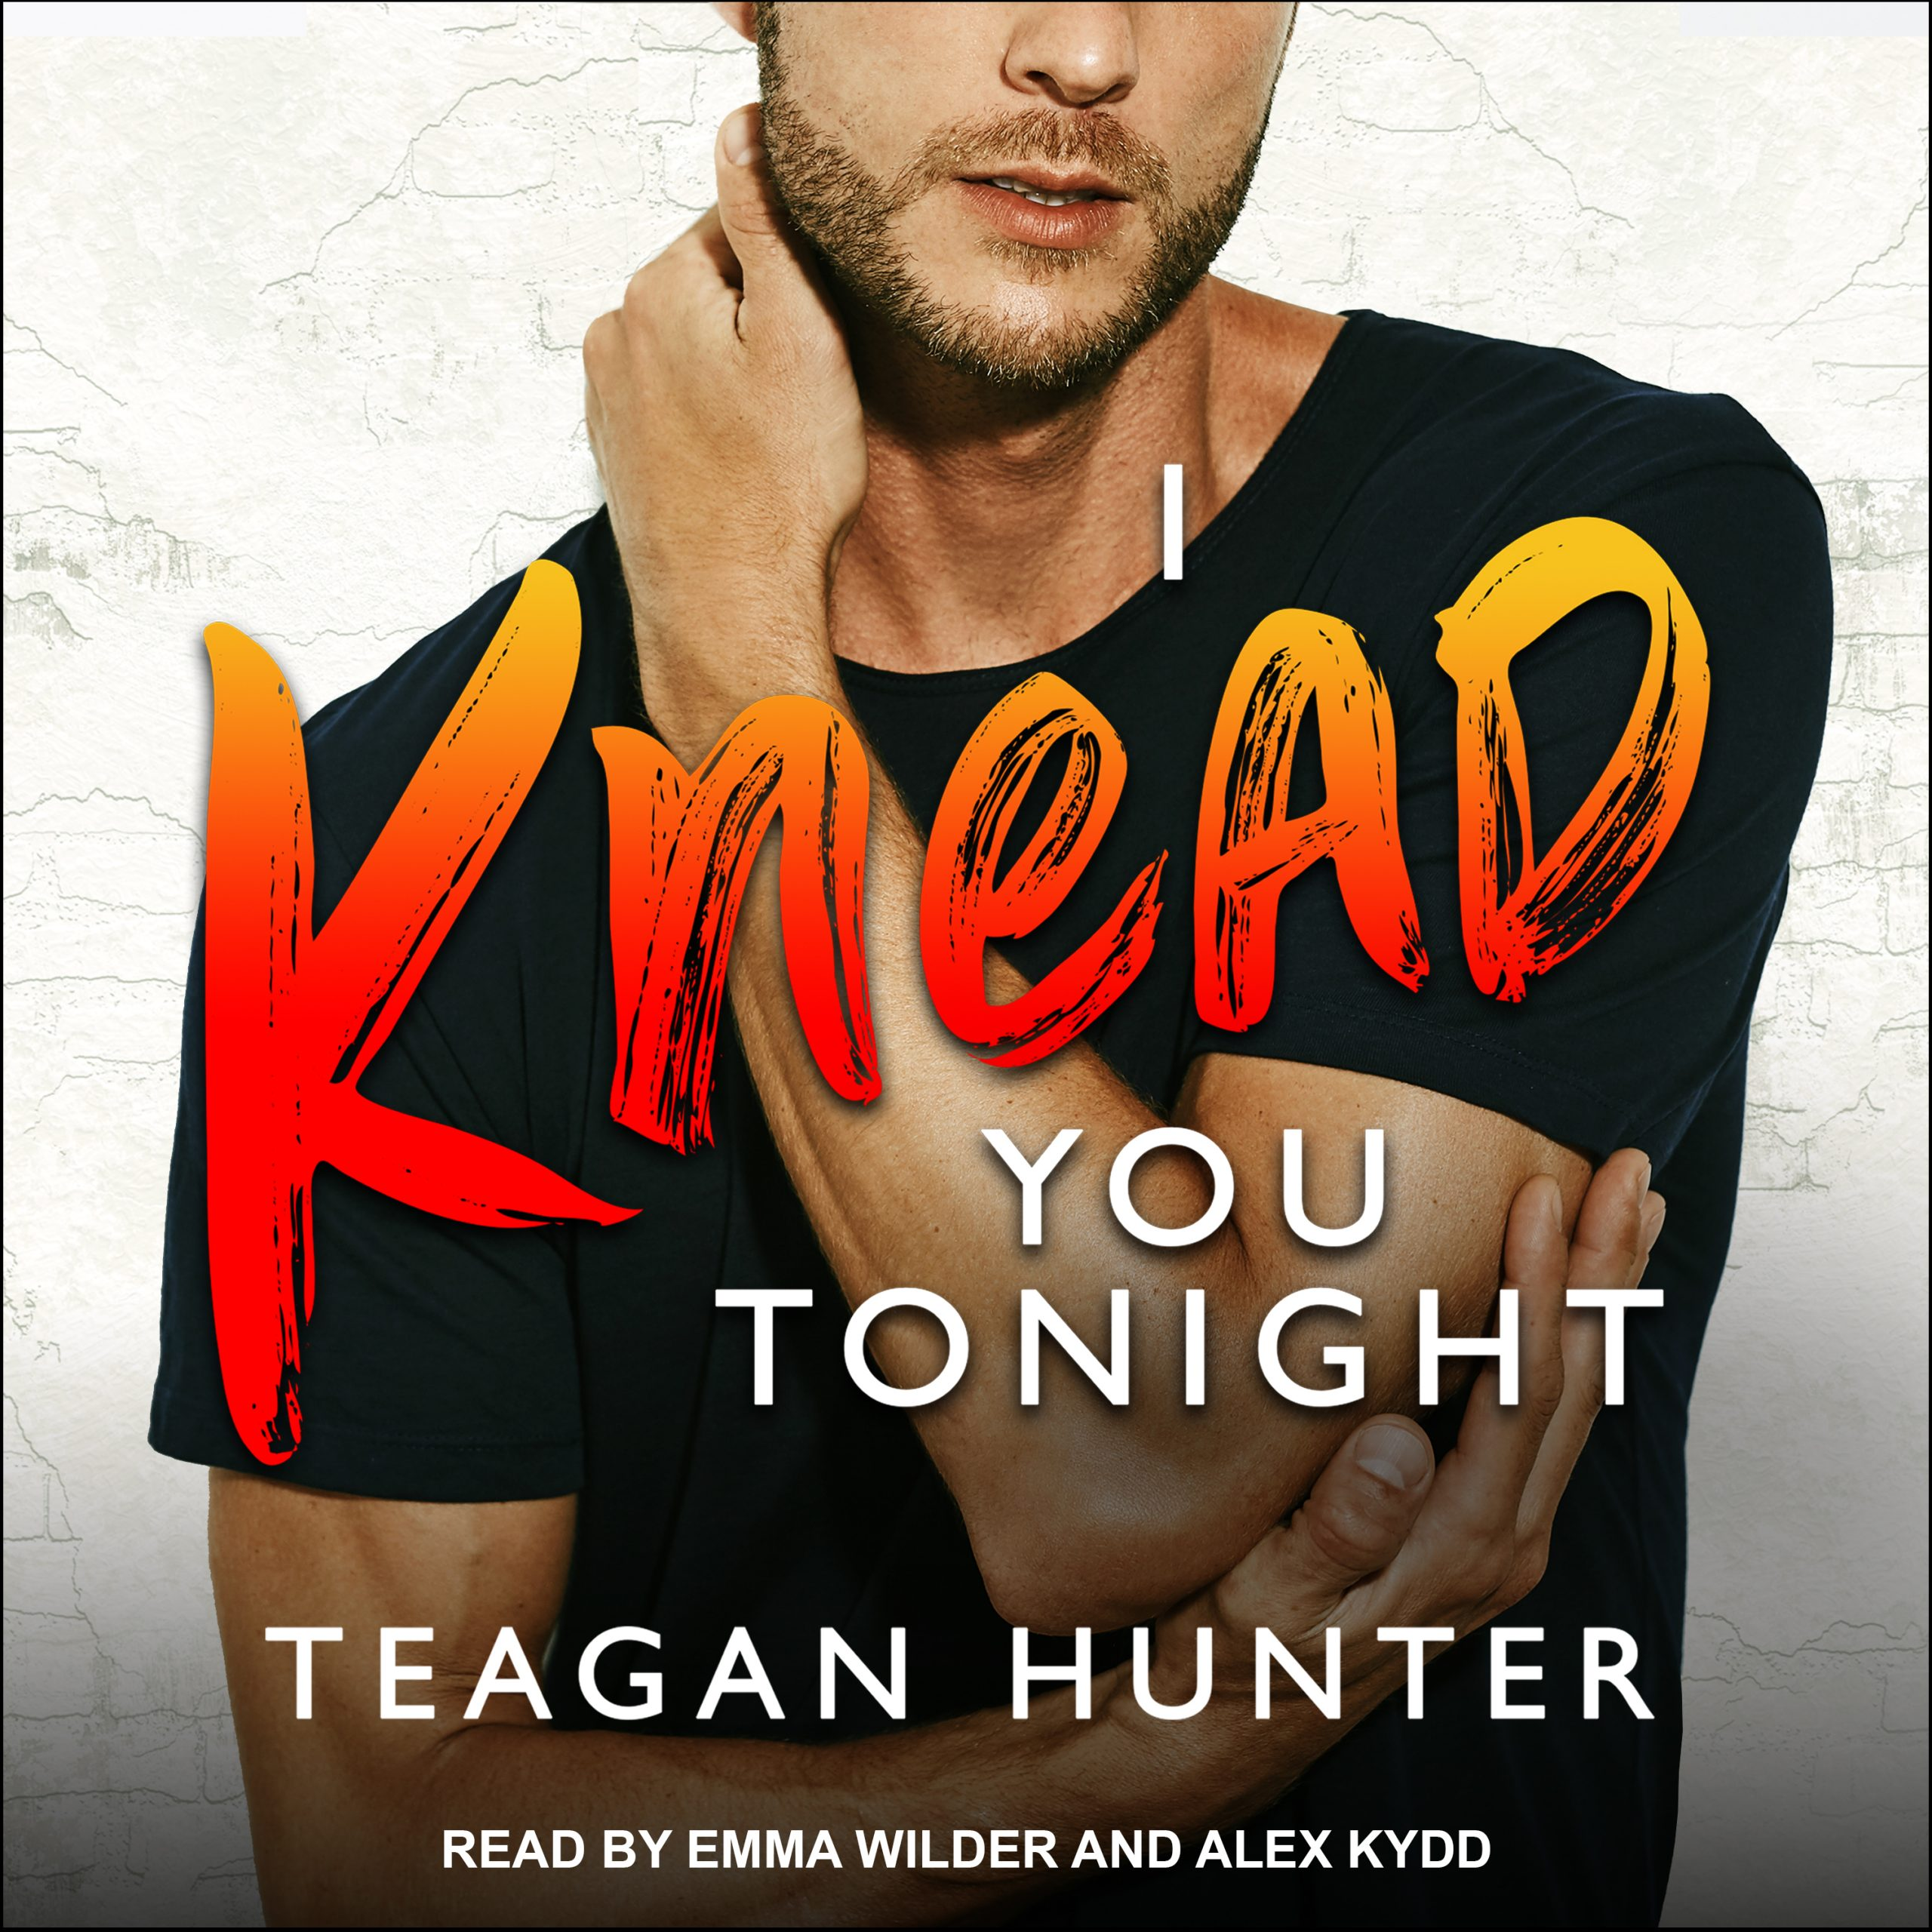 I Knead You Tonight Audio